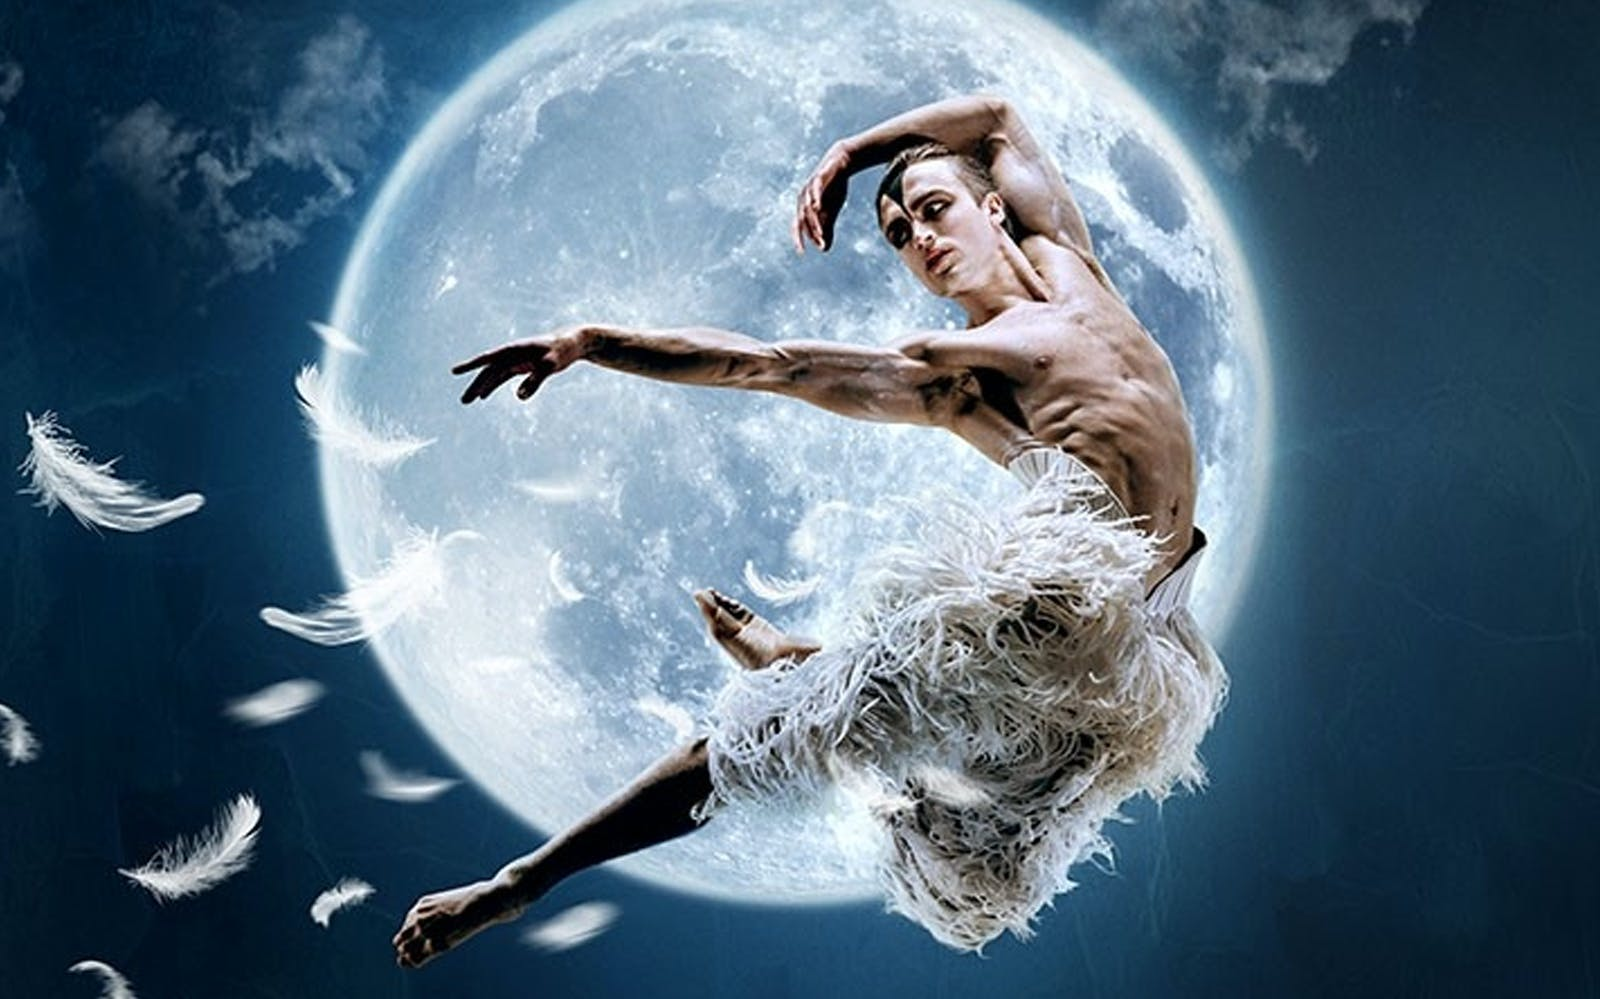 matthew bourne's swan lake-2